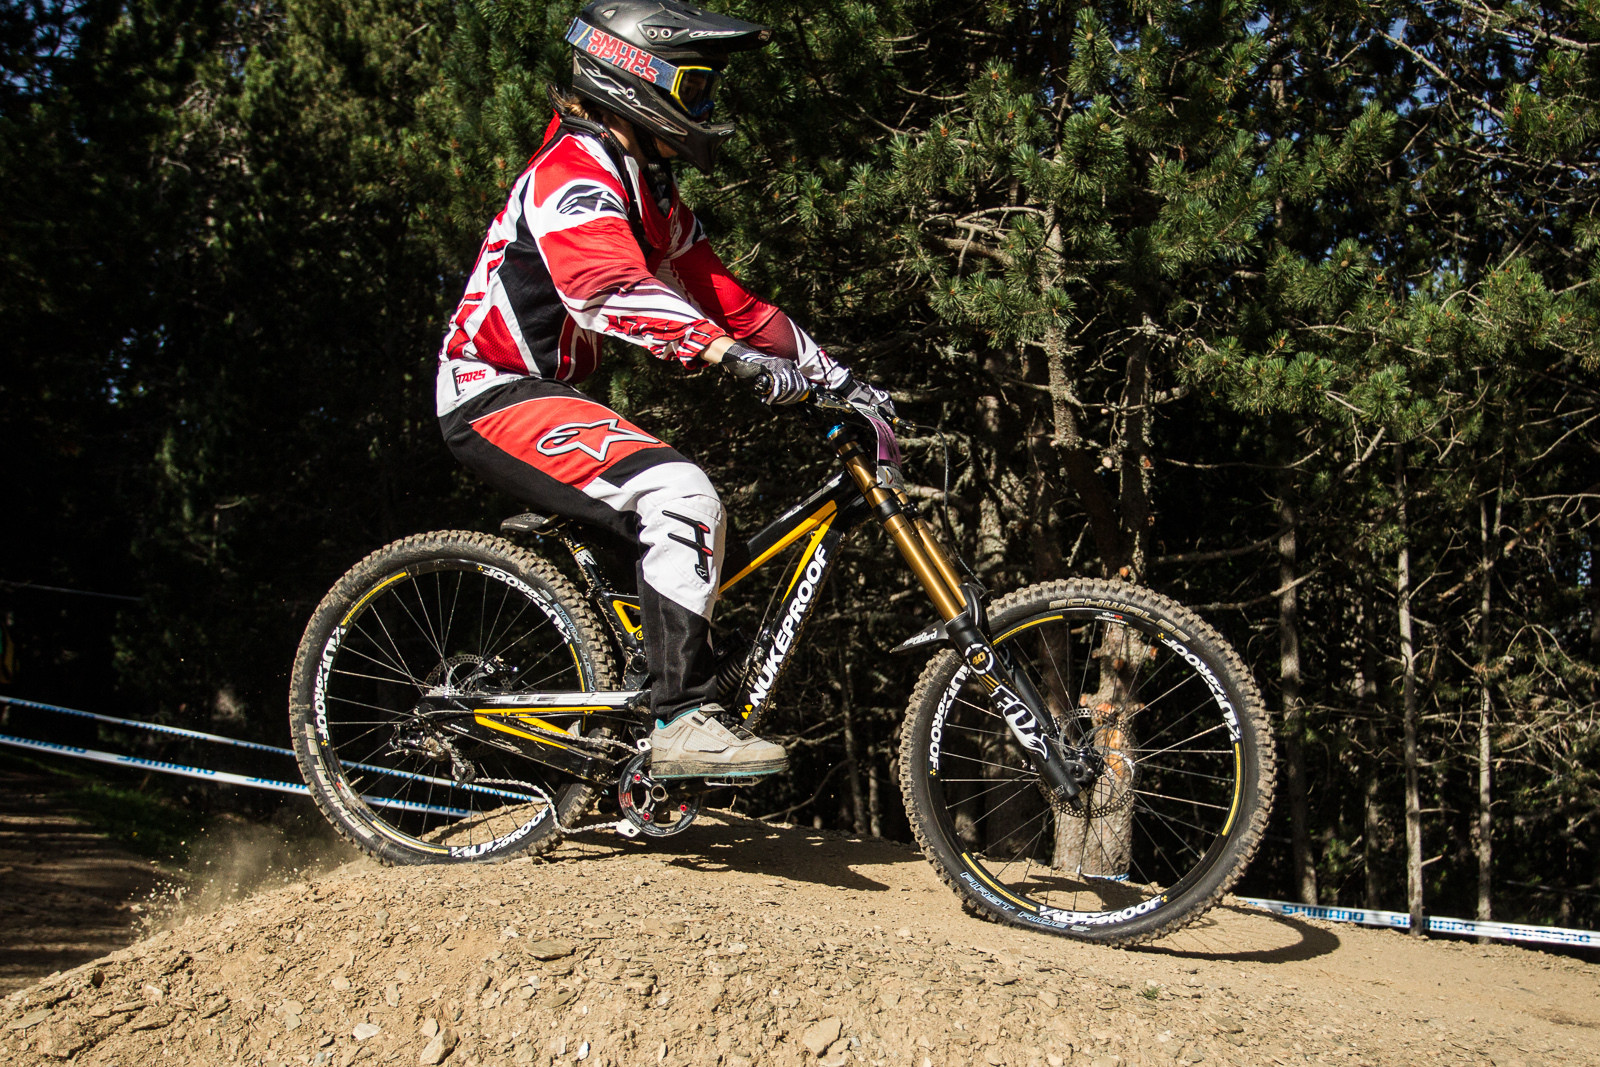 Nukeproof Pulse G-Out at Andorra World Cup - G-Out Project: 2013 Andorra World Cup - Mountain Biking Pictures - Vital MTB